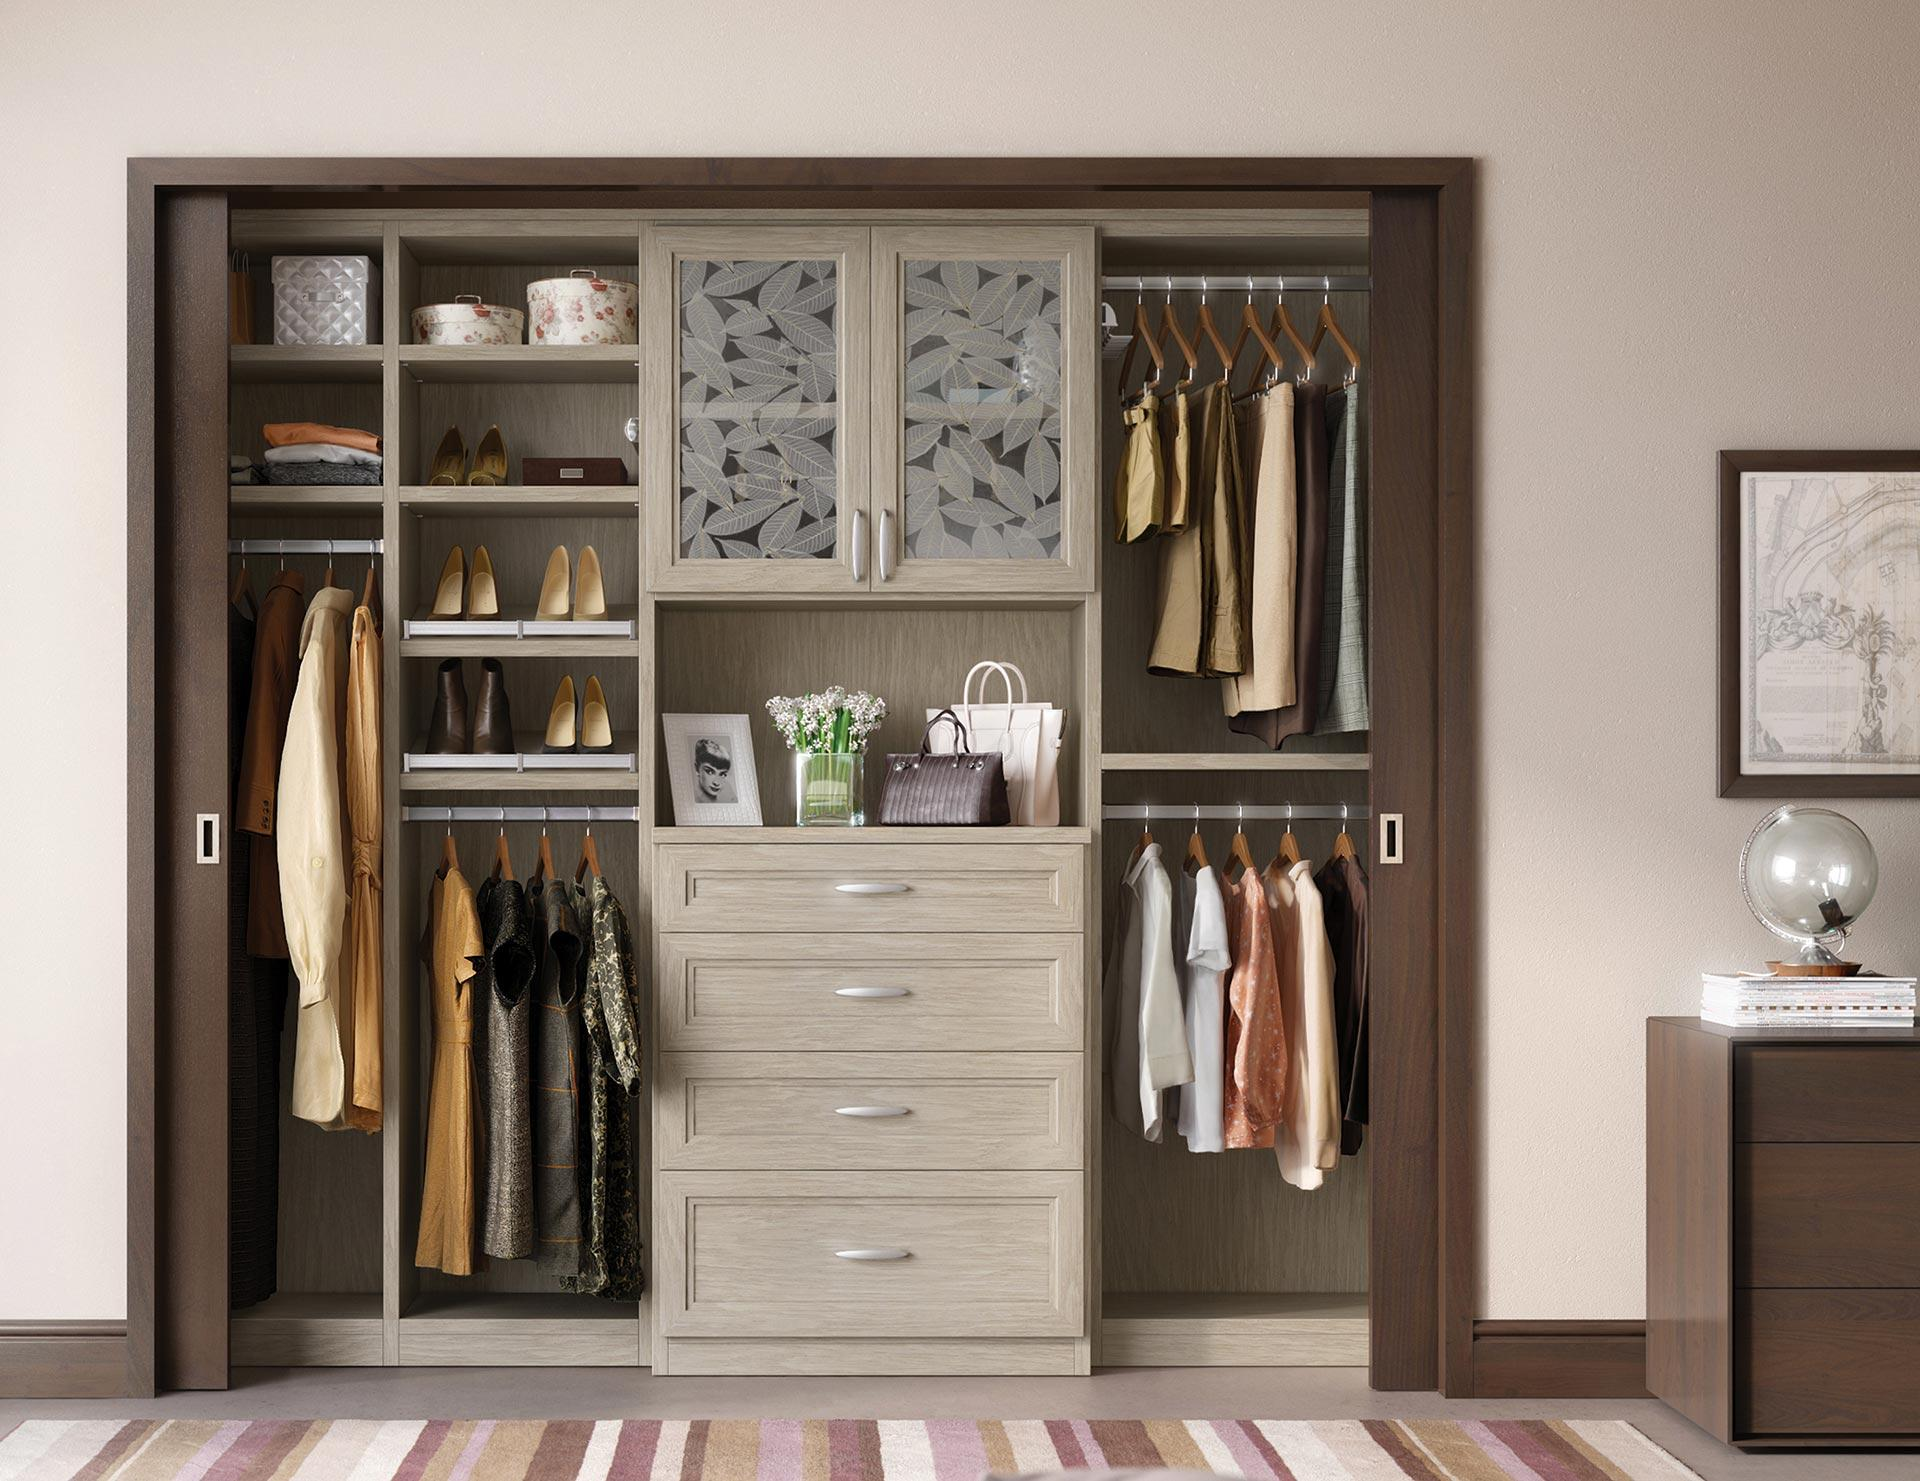 reach in closets designs ideas by california closets. Black Bedroom Furniture Sets. Home Design Ideas